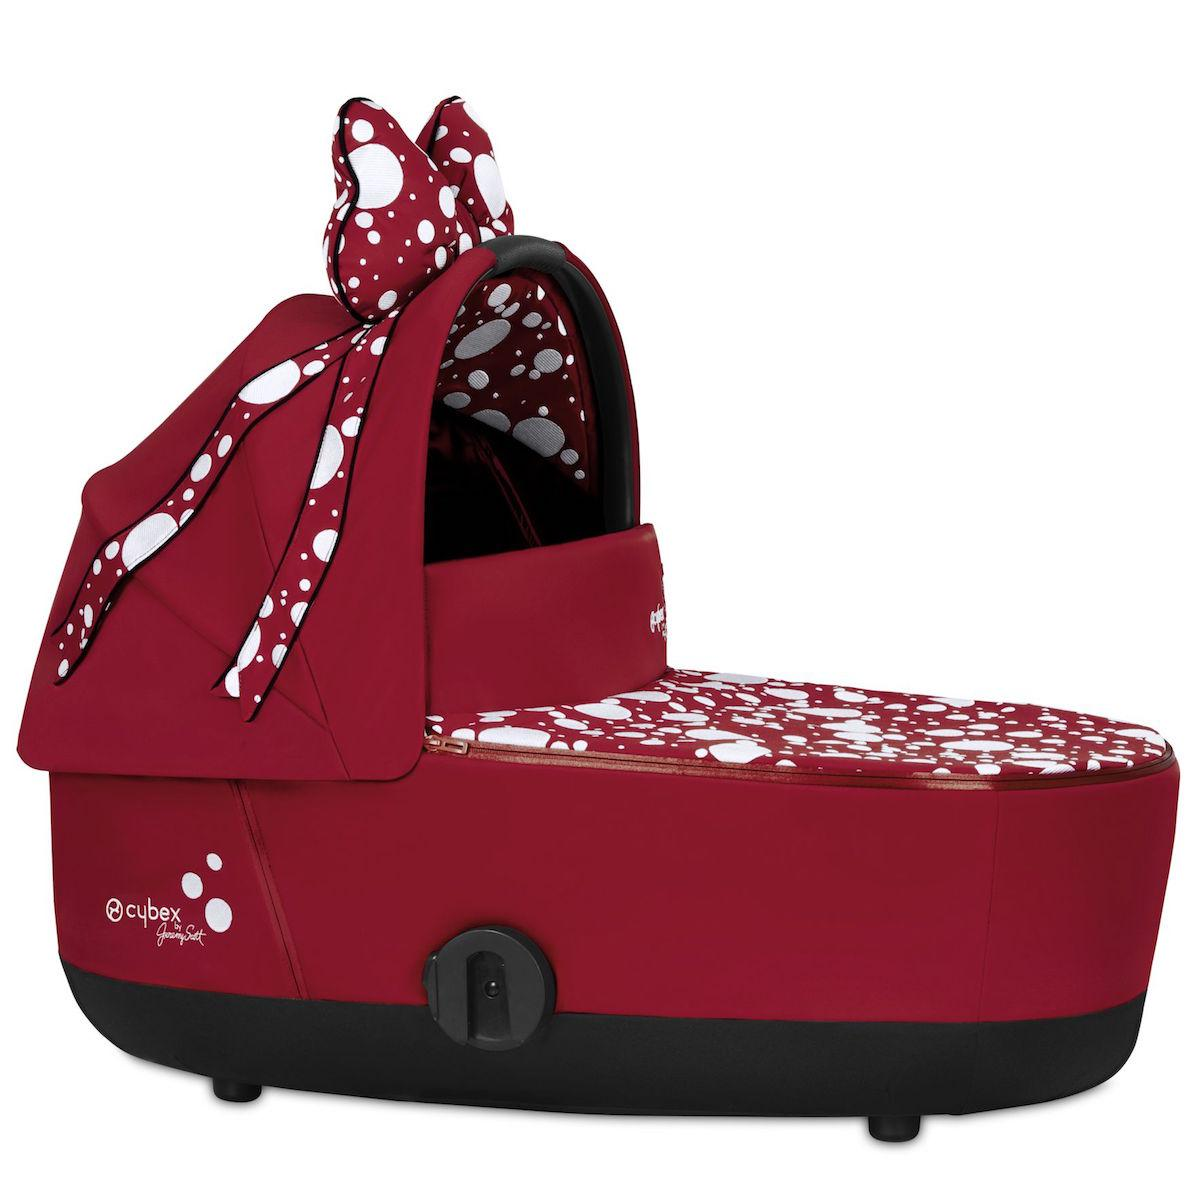 Nacelle luxe MIOS Cybex Petticoat Red Cybex dark red